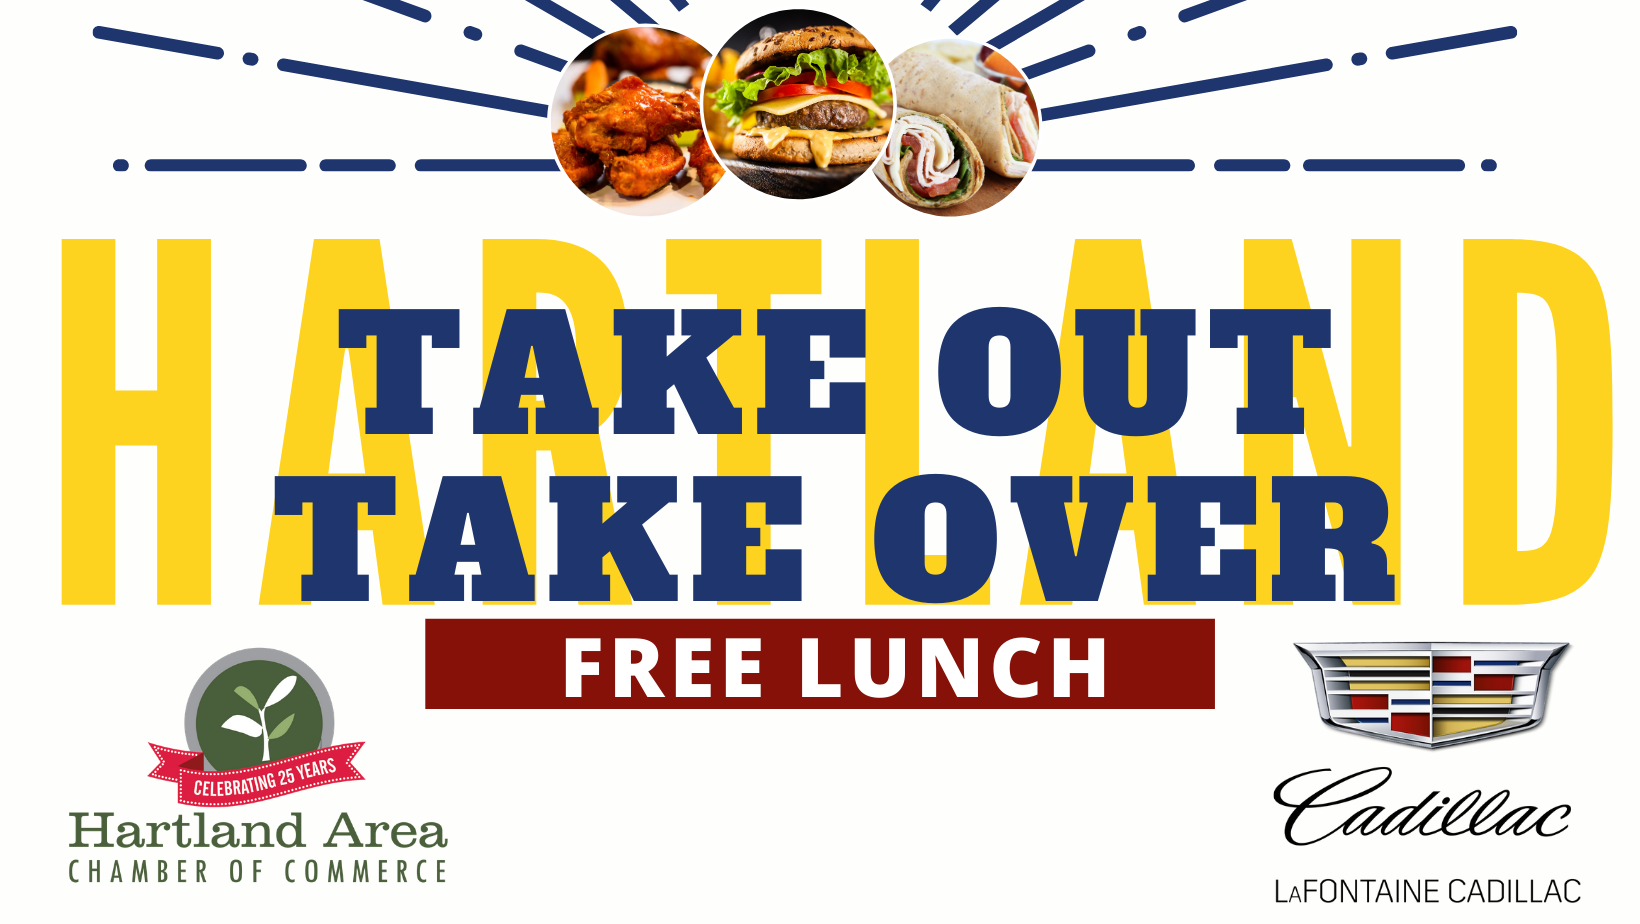 Take Out Take Over - FREE Lunch Campaign